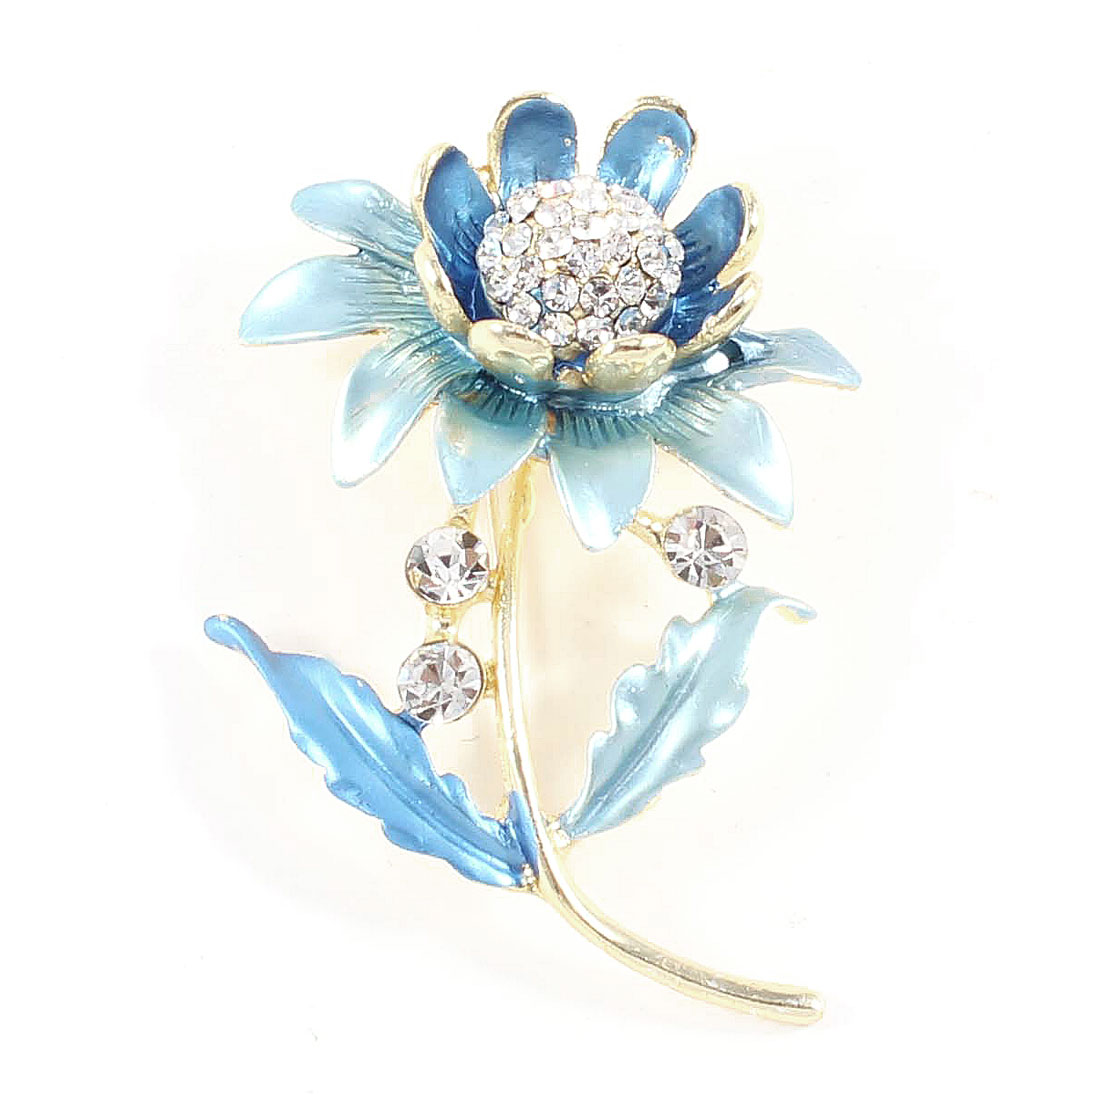 Ladies Rhinestones Inlaid Metal Flowers Brooch Breast Pin Decor Two Tone Blue